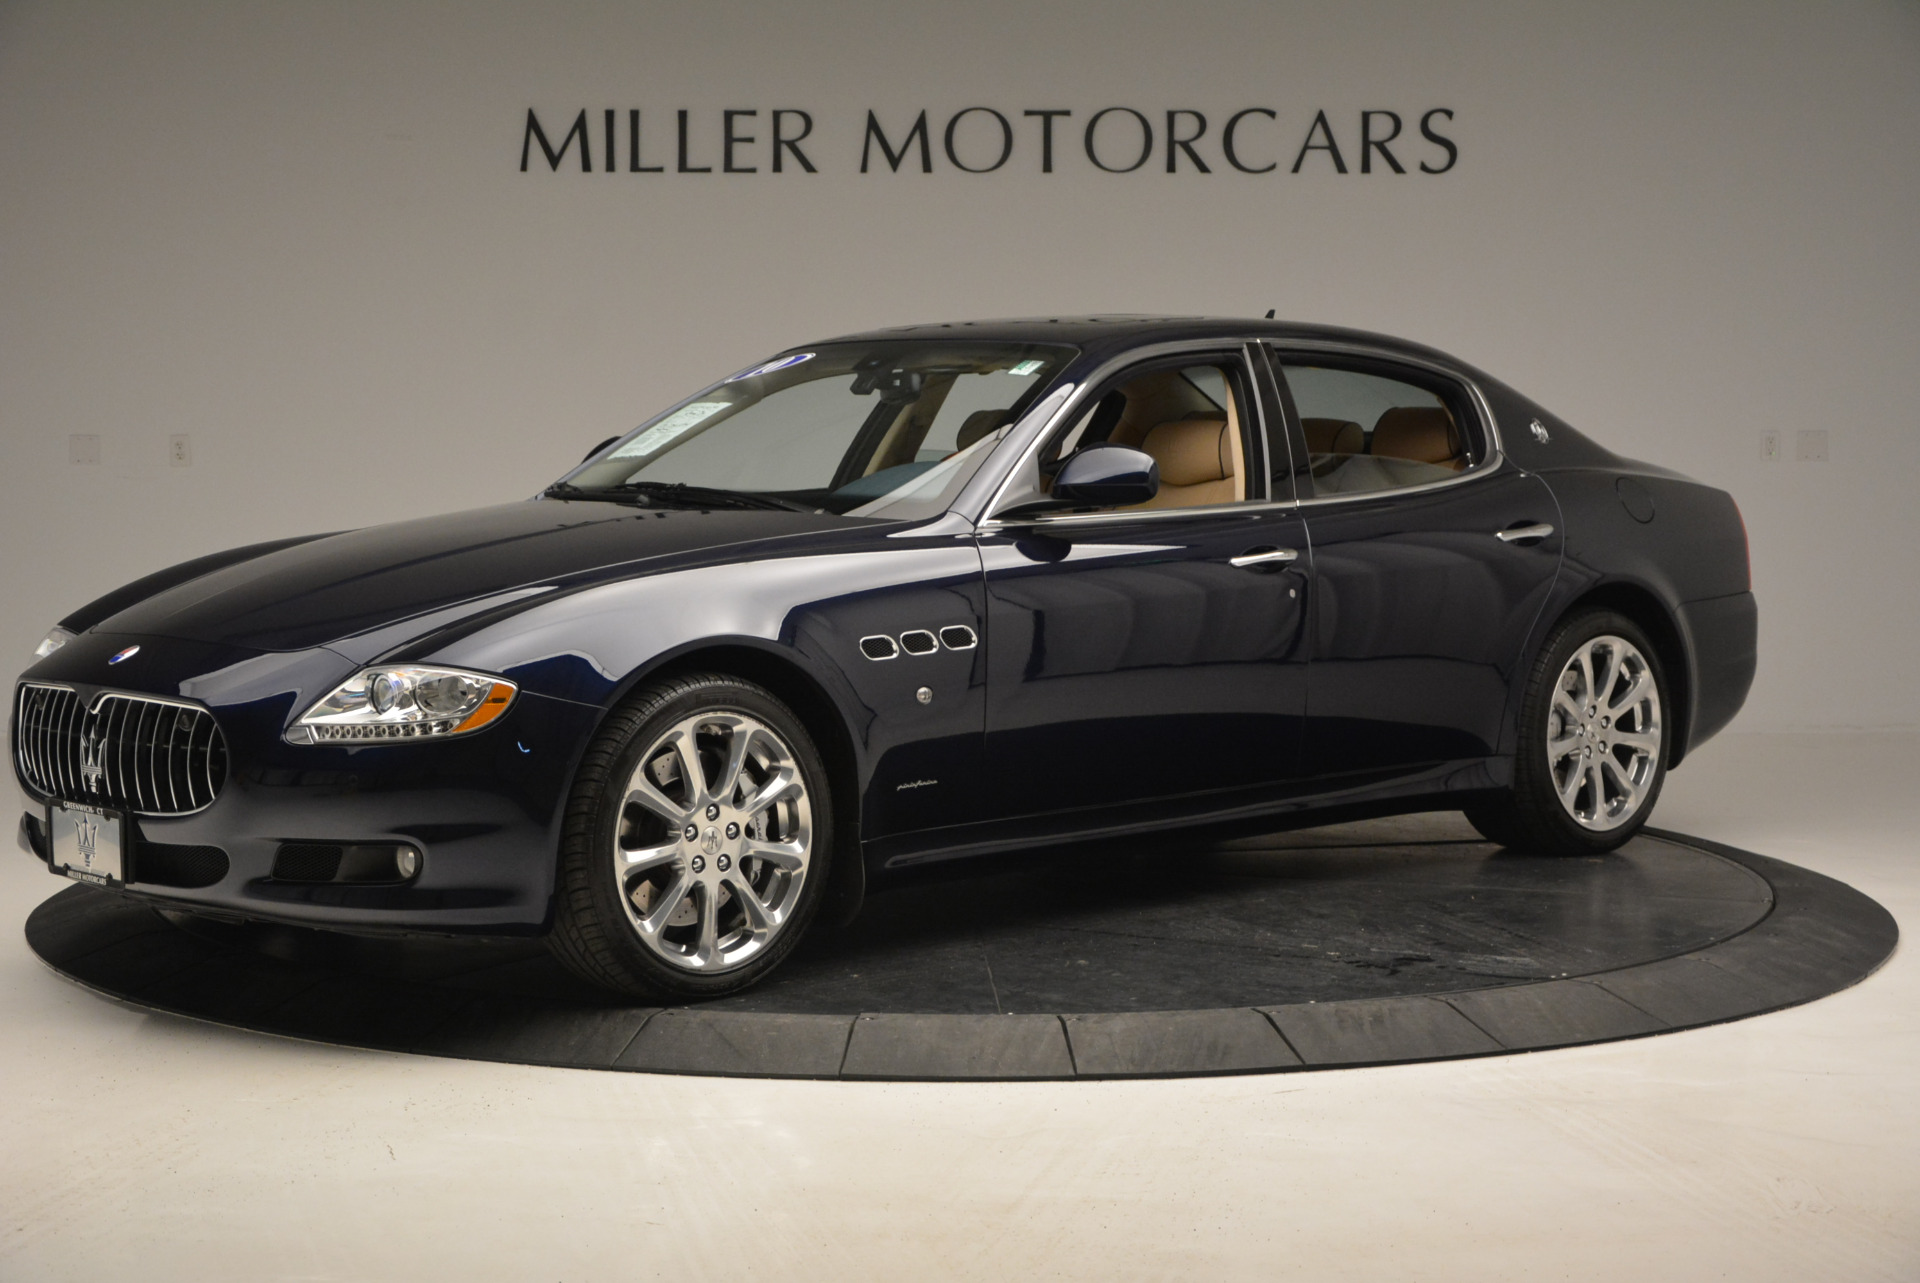 Used 2010 Maserati Quattroporte S For Sale In Westport, CT 795_p2